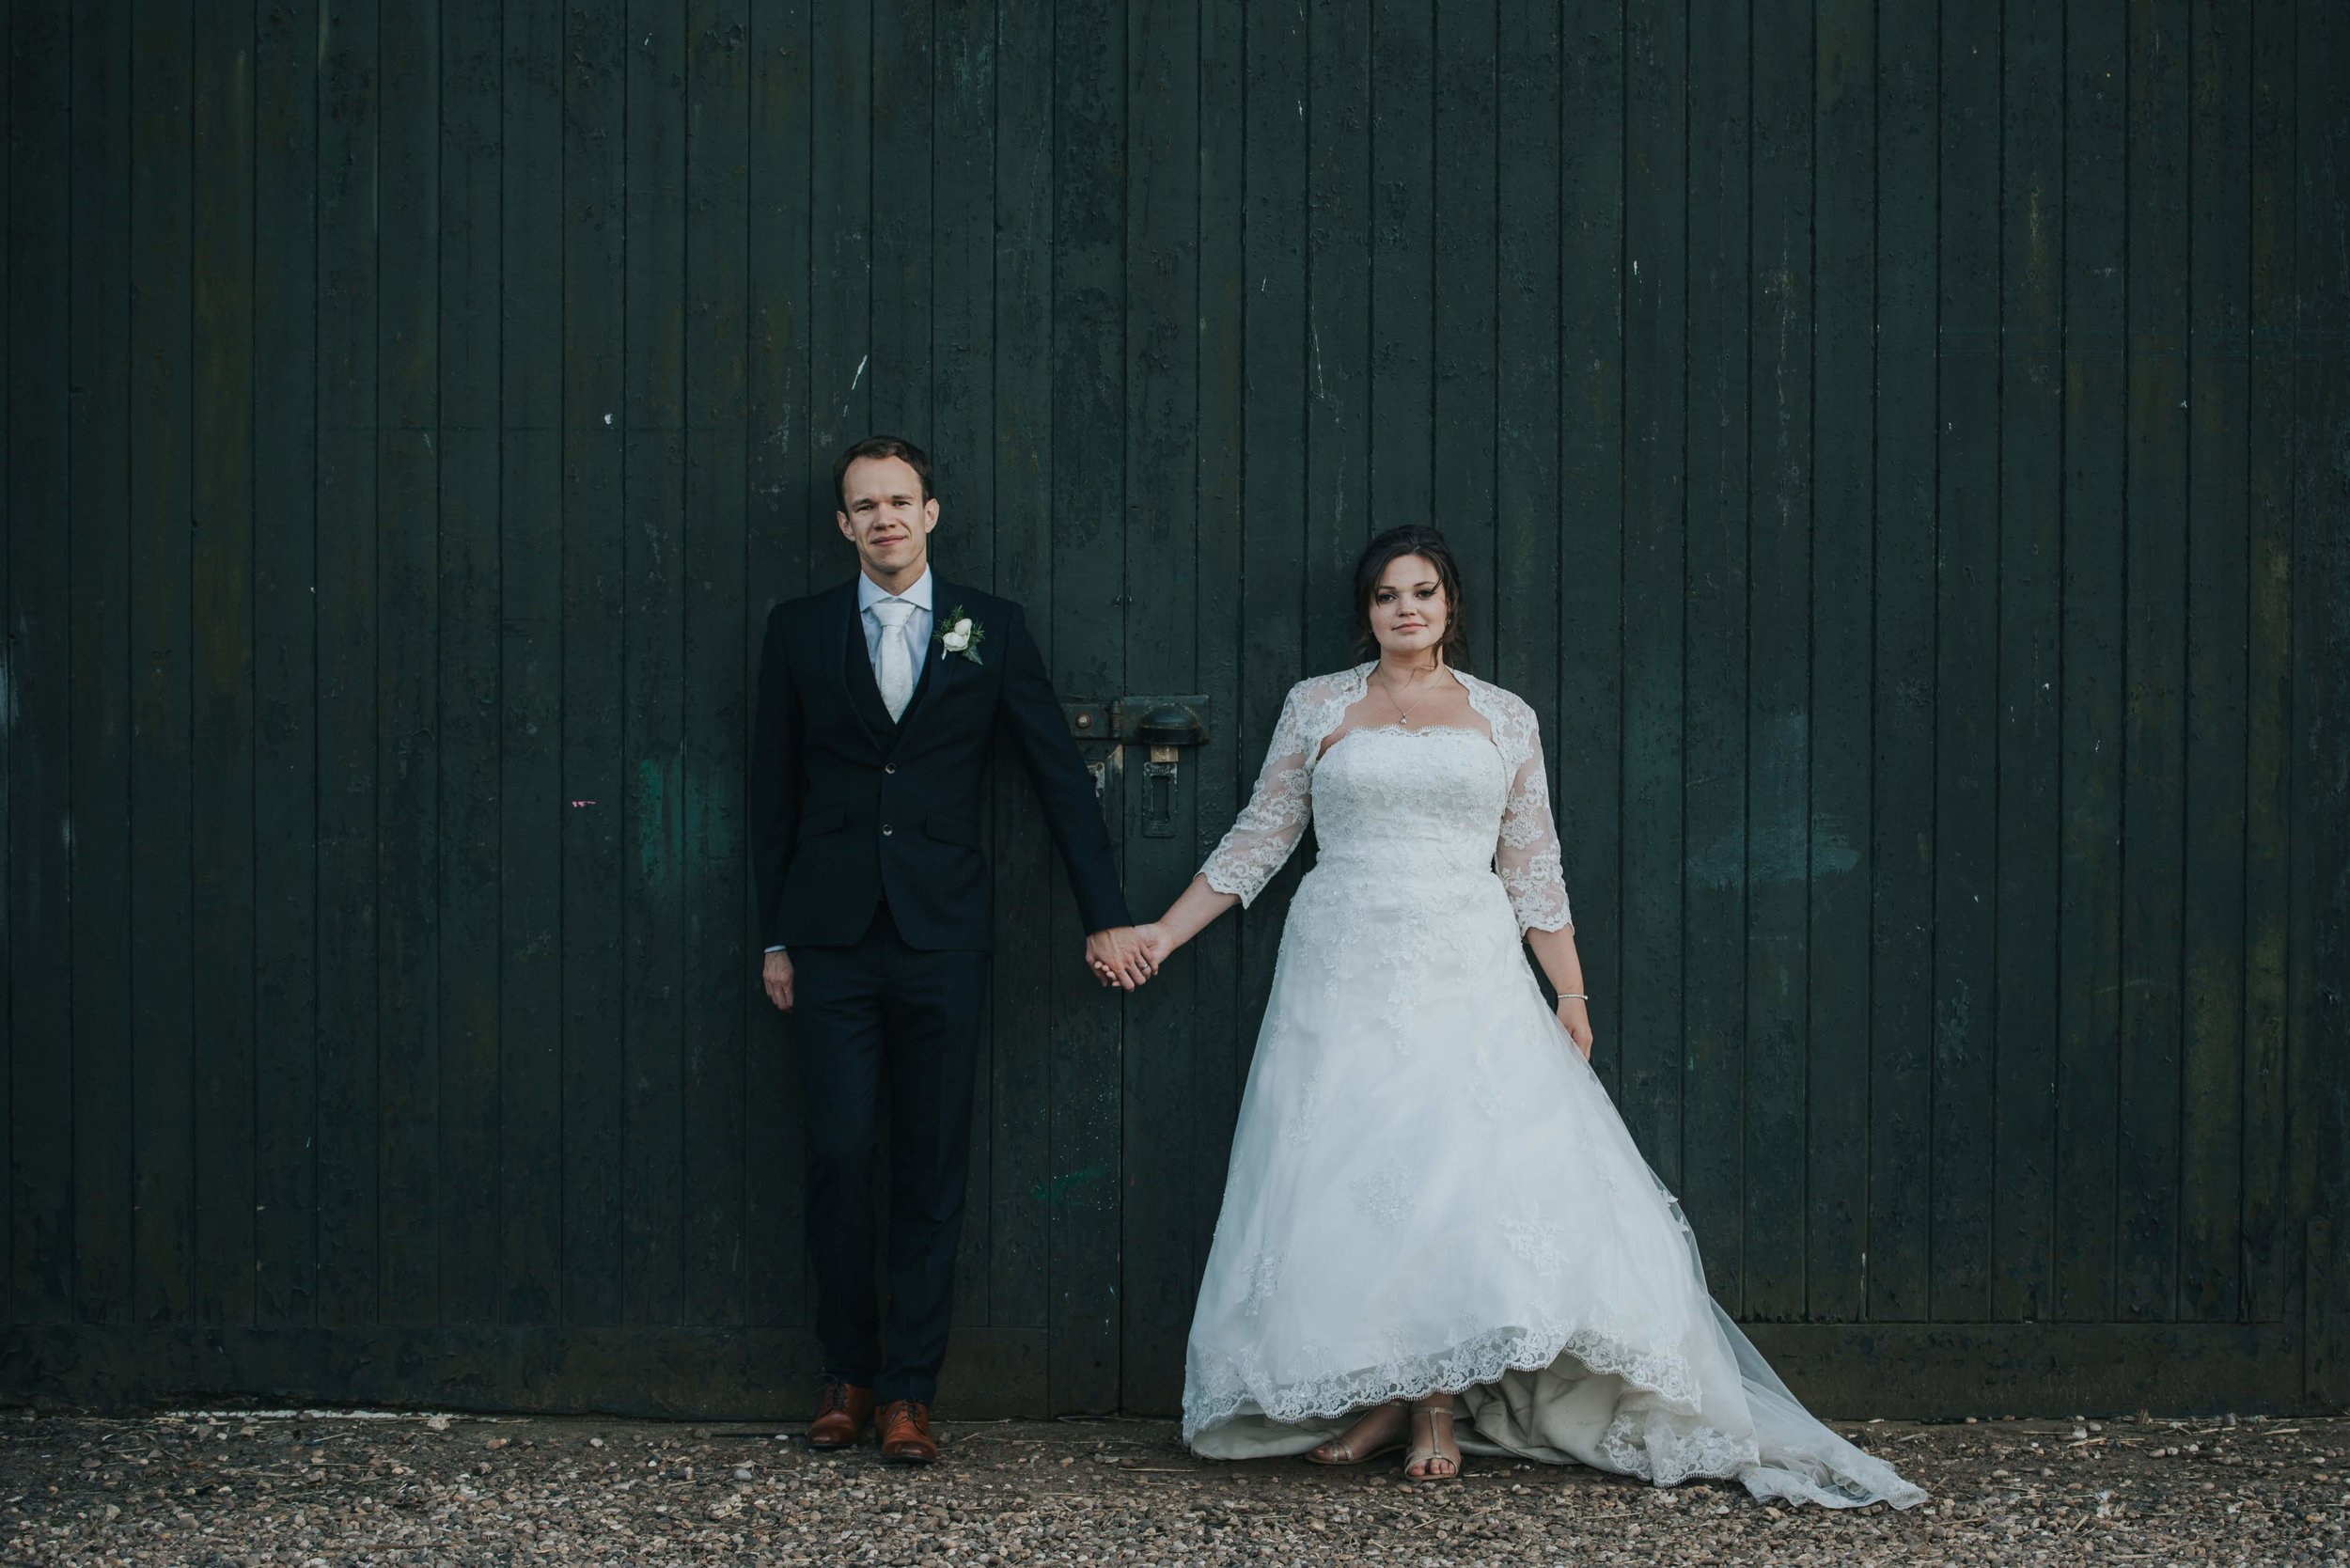 Lincolnshire Wedding Photography - Stainton Manor Farm